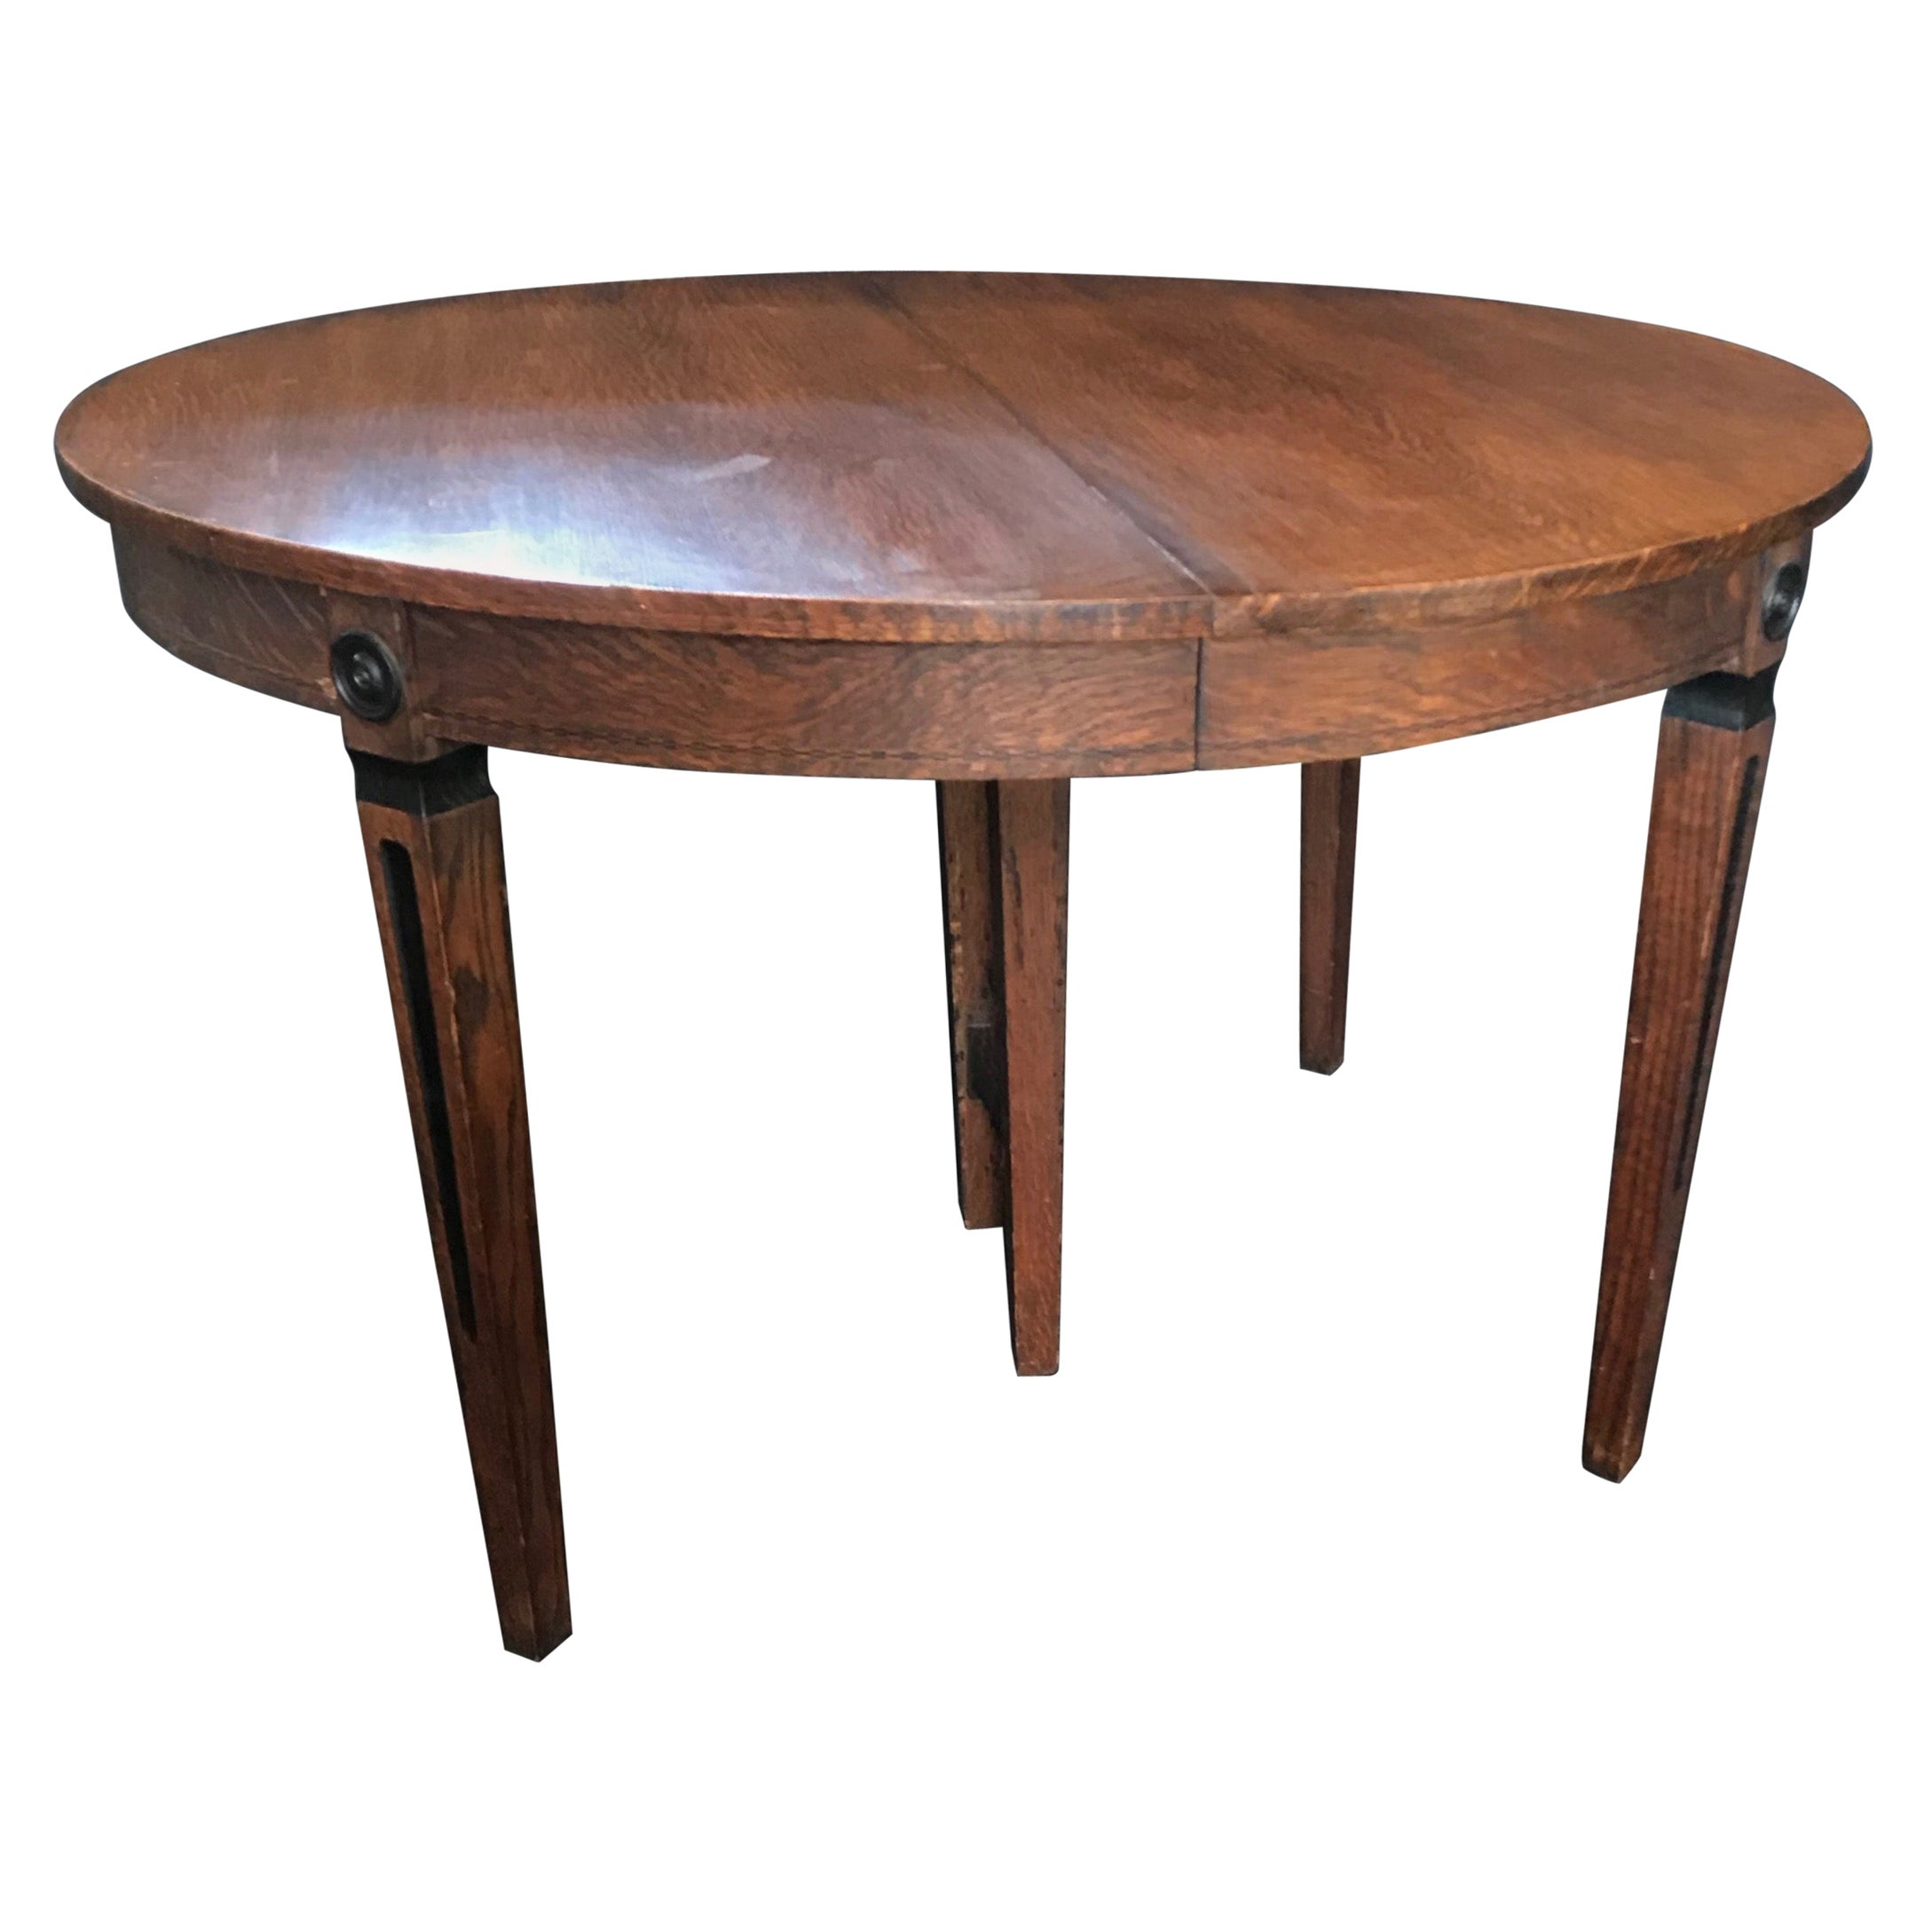 Round Louis XVI Style Oak Extendable Dining Table